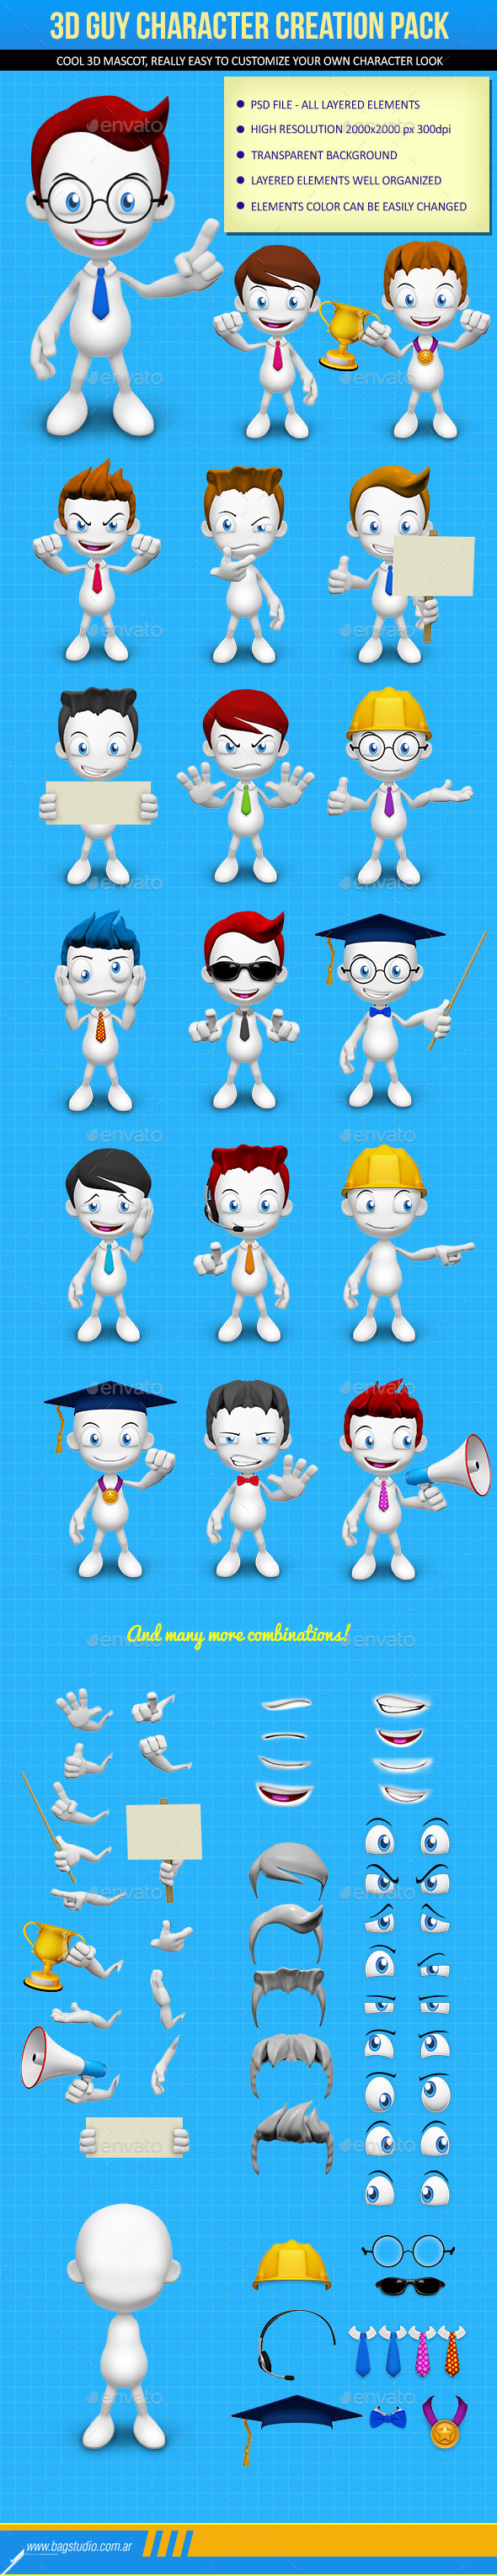 3d Guy Character Creation Pack Characters Illustrations